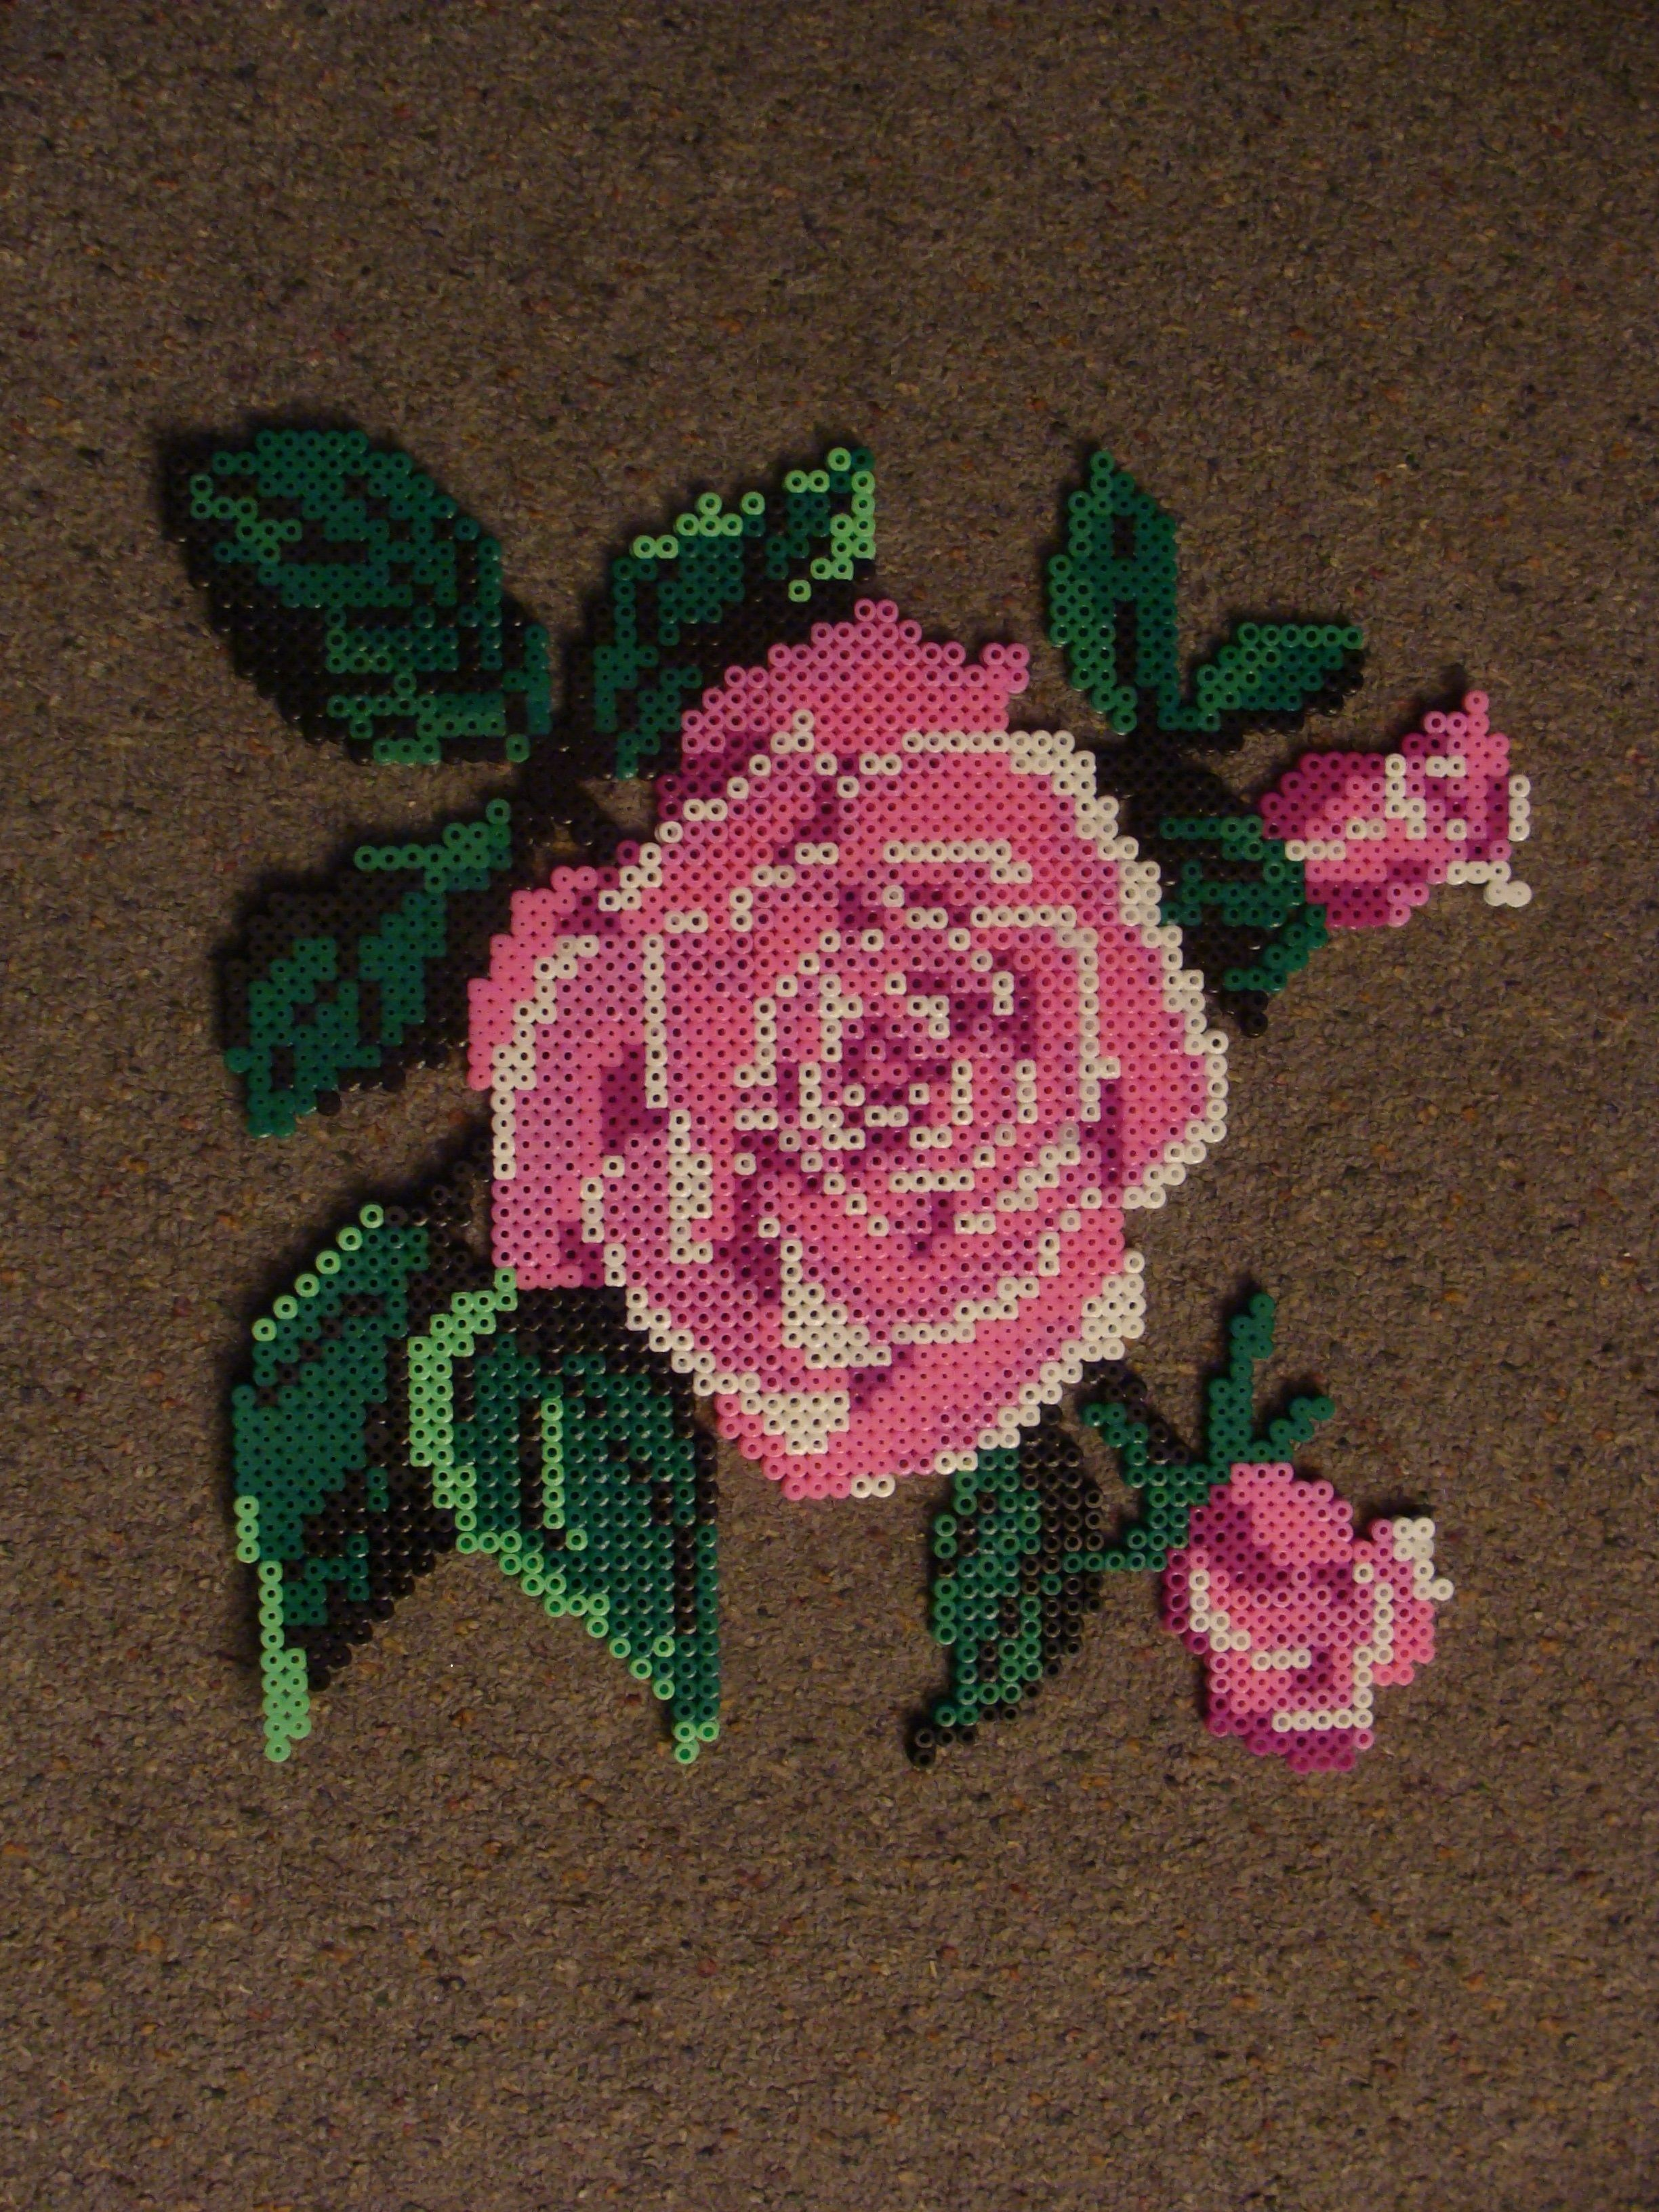 Rose Perler beads by Yelenna on deviantart